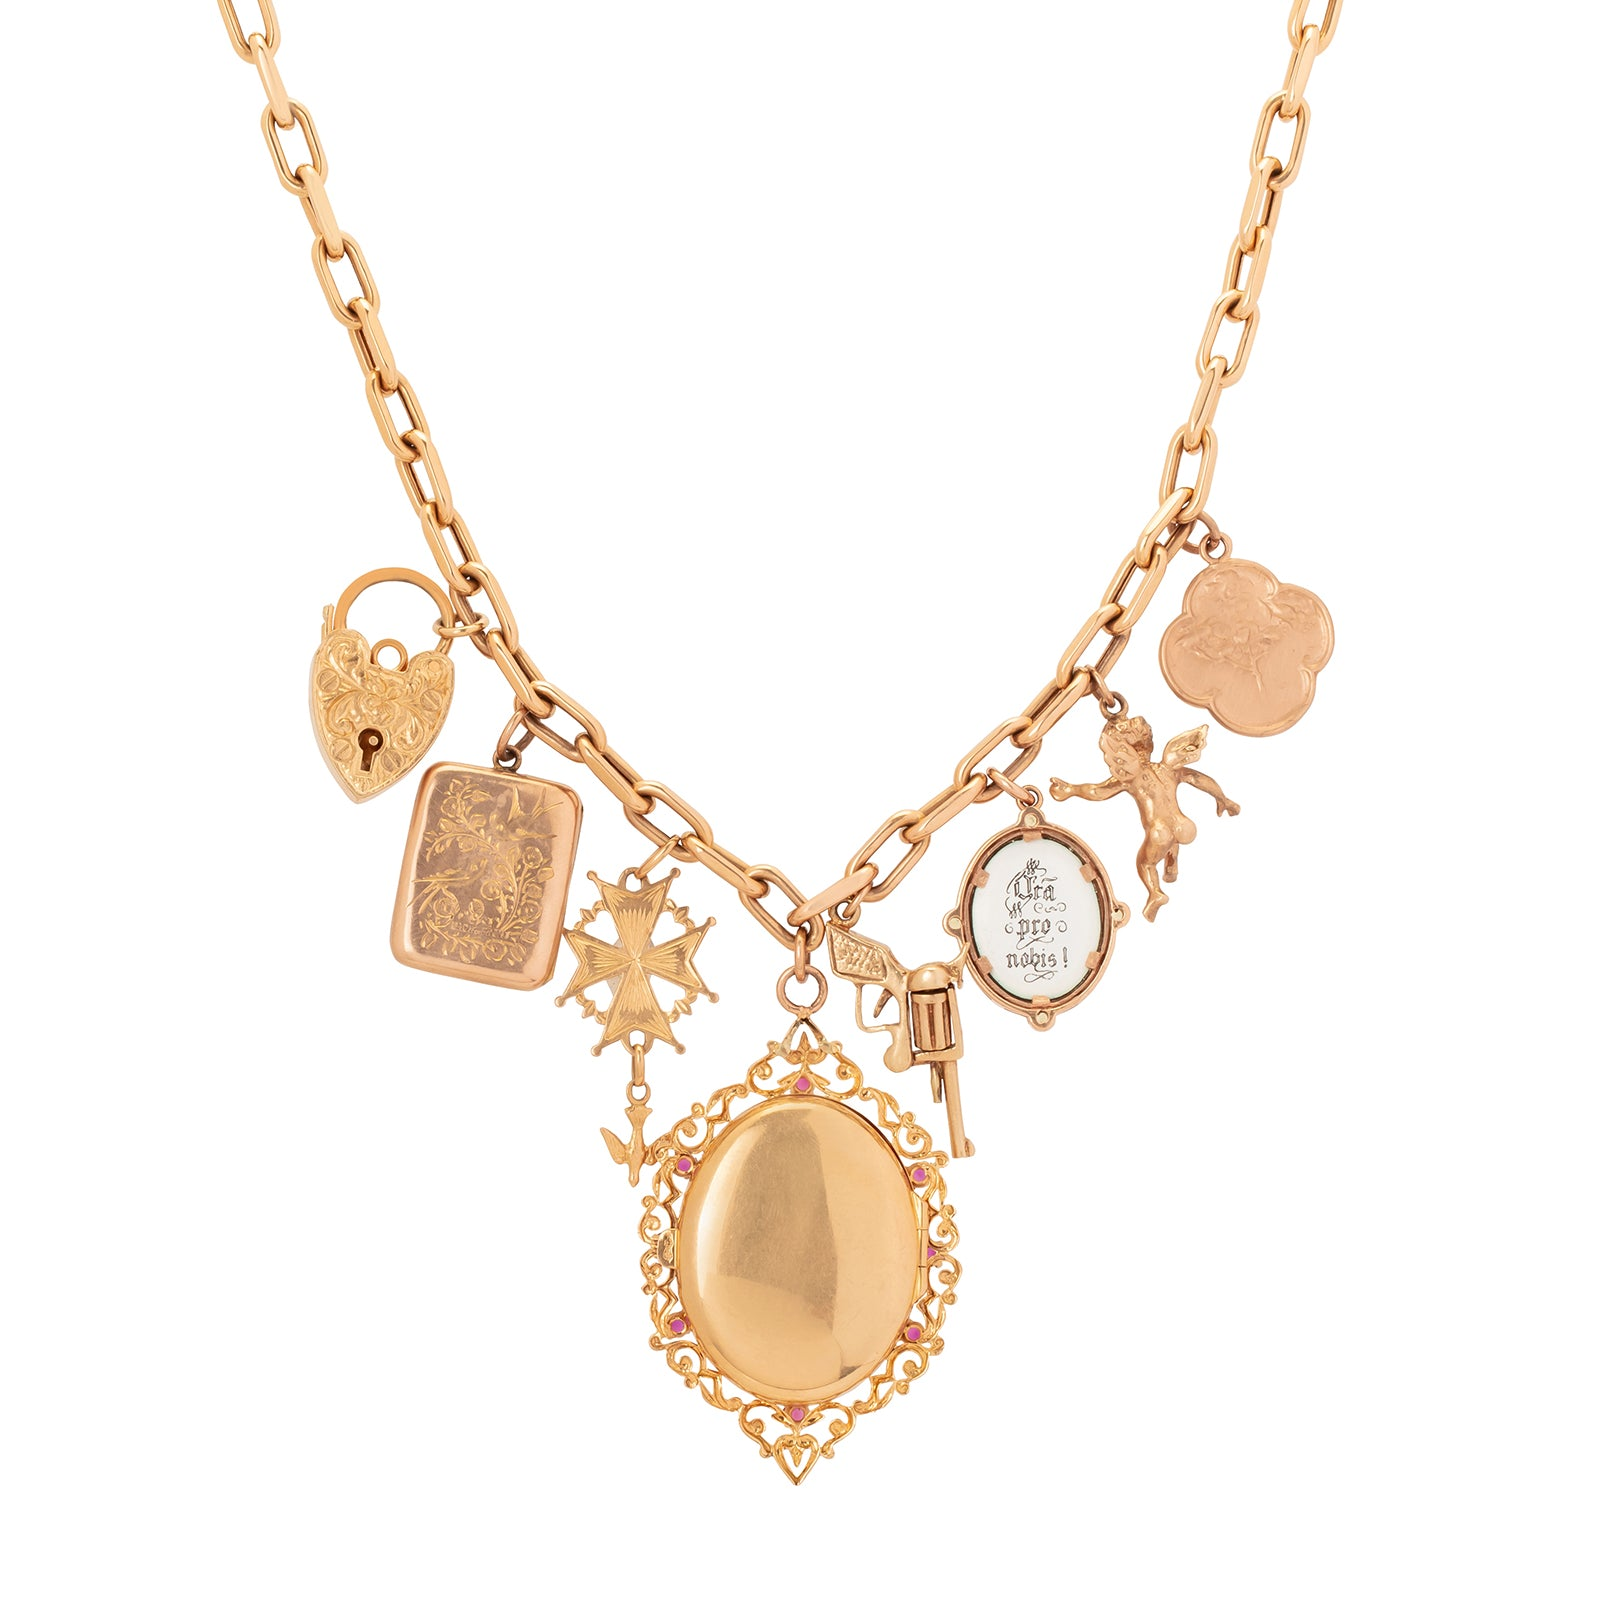 Colette Charms & Locket Necklace - Necklaces - Broken English Jewelry